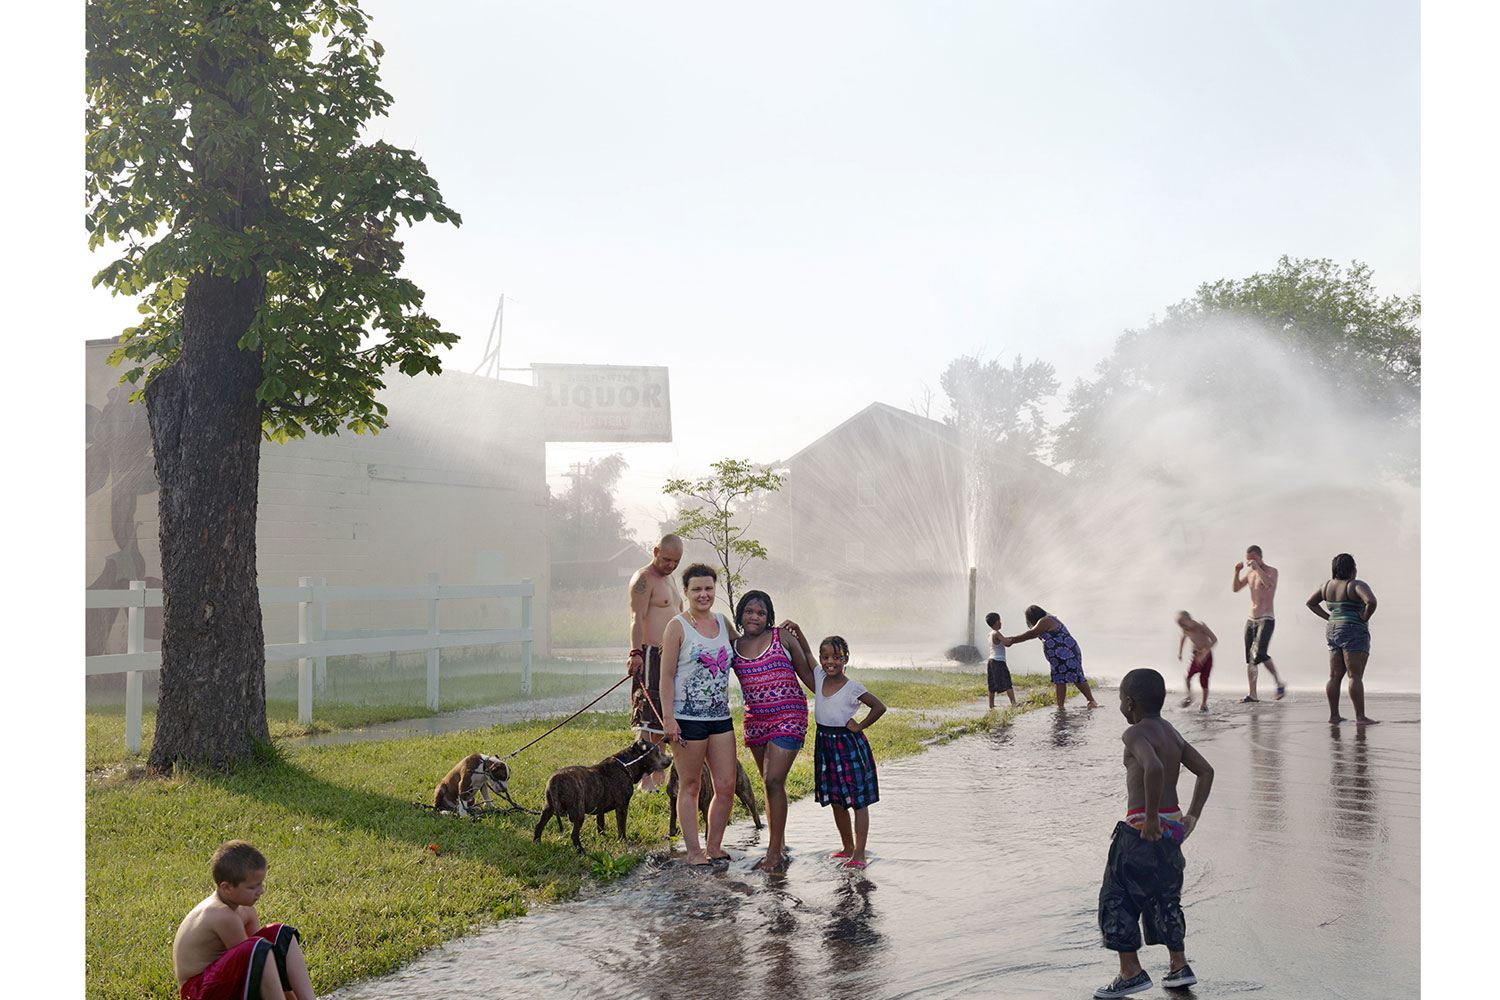 A Neighborhood Group Playing in the Street, North Corktown, Detroit, 2012                                          The temperature hit 103 degrees on this July day, forcing many neighborhood residents to open up fire hydrants to relieve themselves from the sweltering heat.